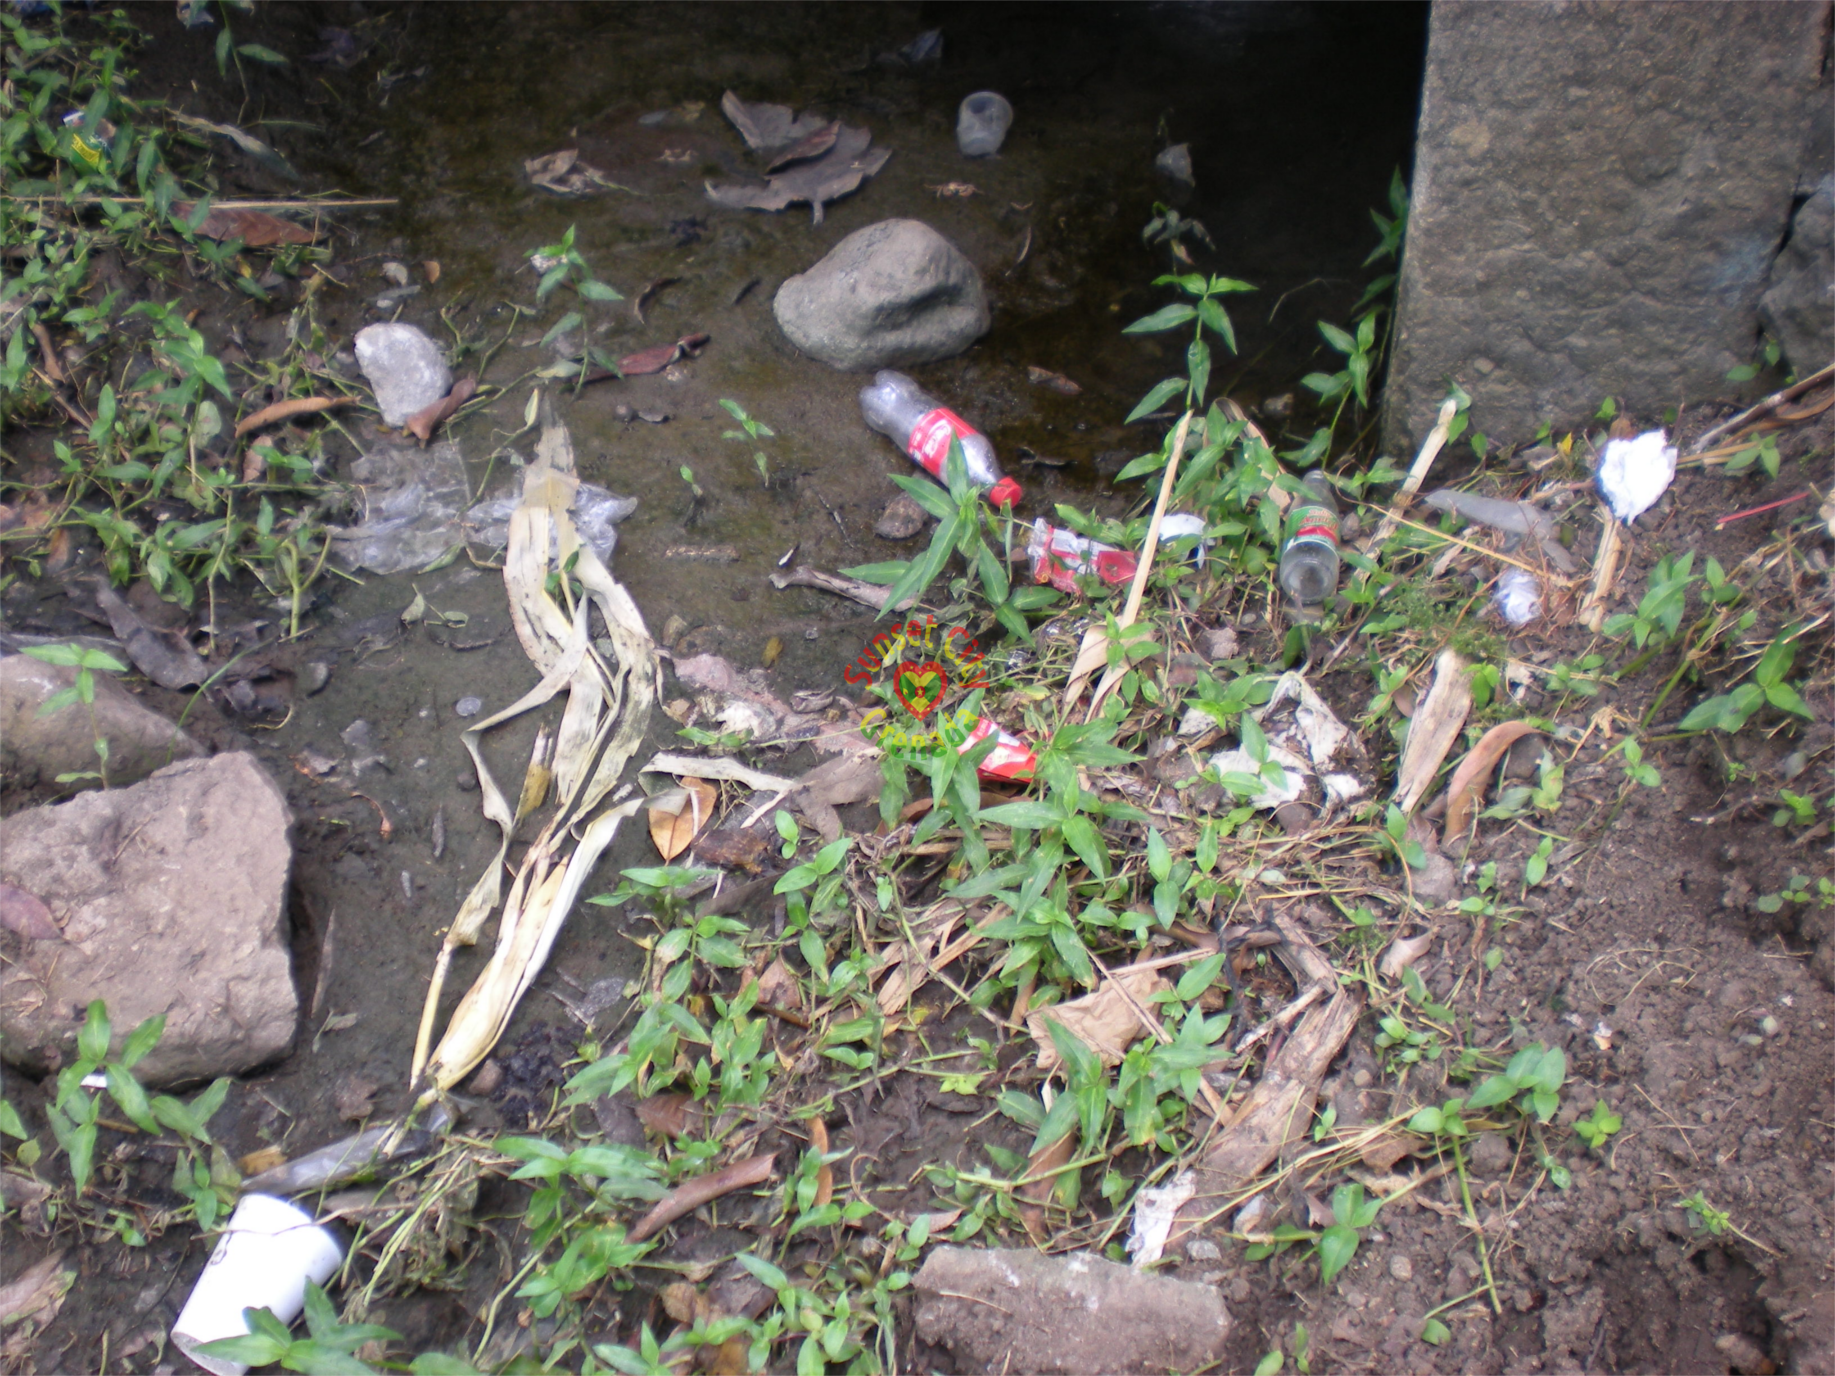 Garbage dumped in a drain leading to Diamond Estate - garbage disposal bin is less than 10 meters way